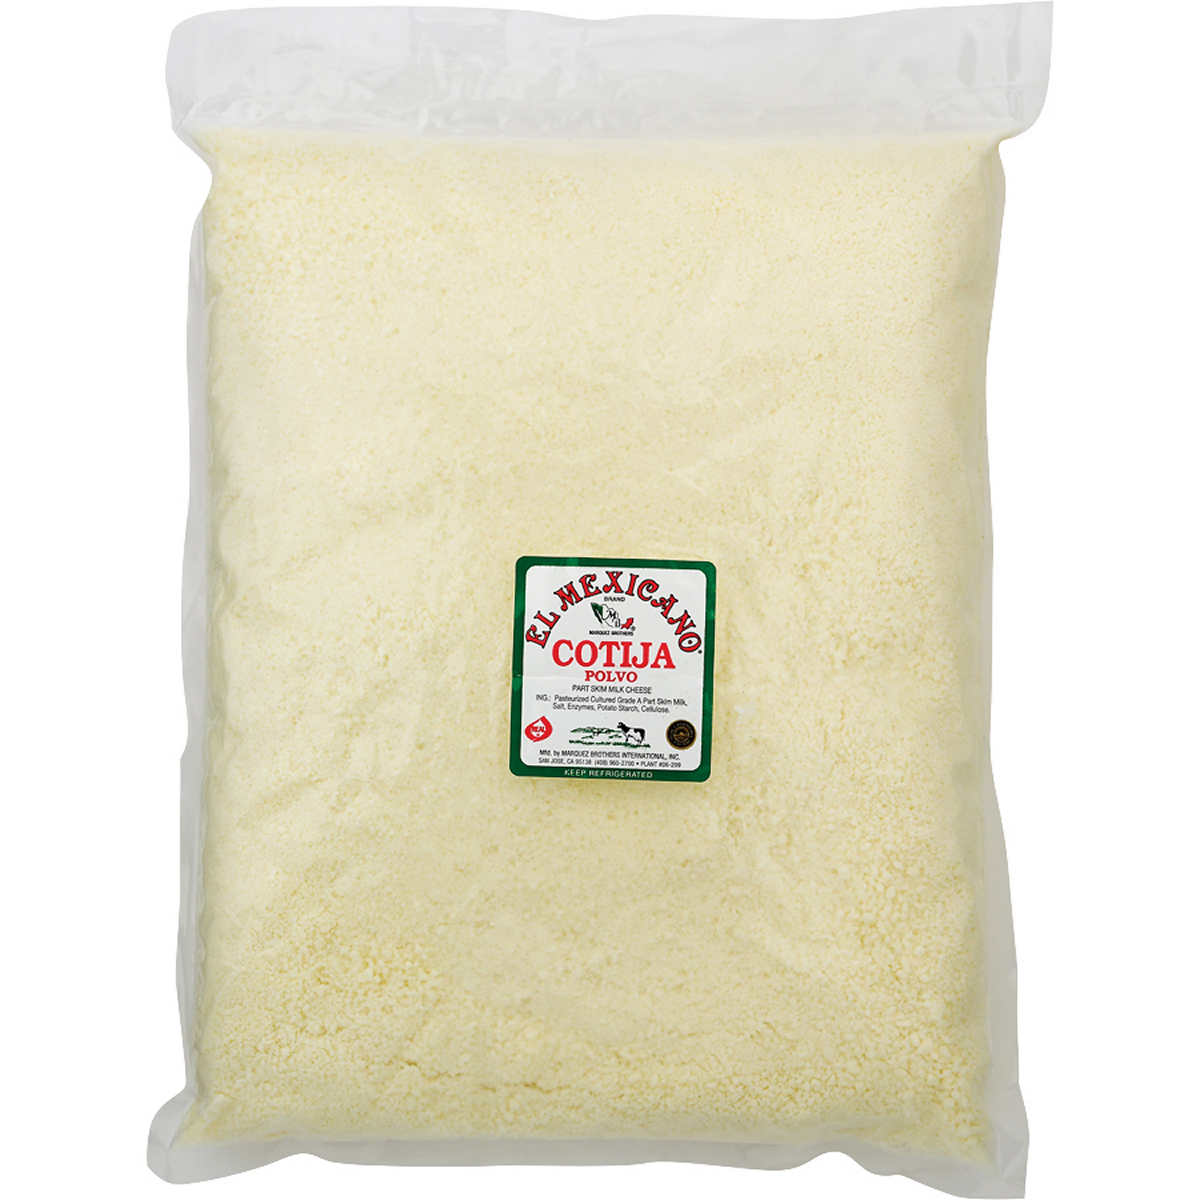 Cotija Cheese Cut Wrapped By Igourmet Cheese